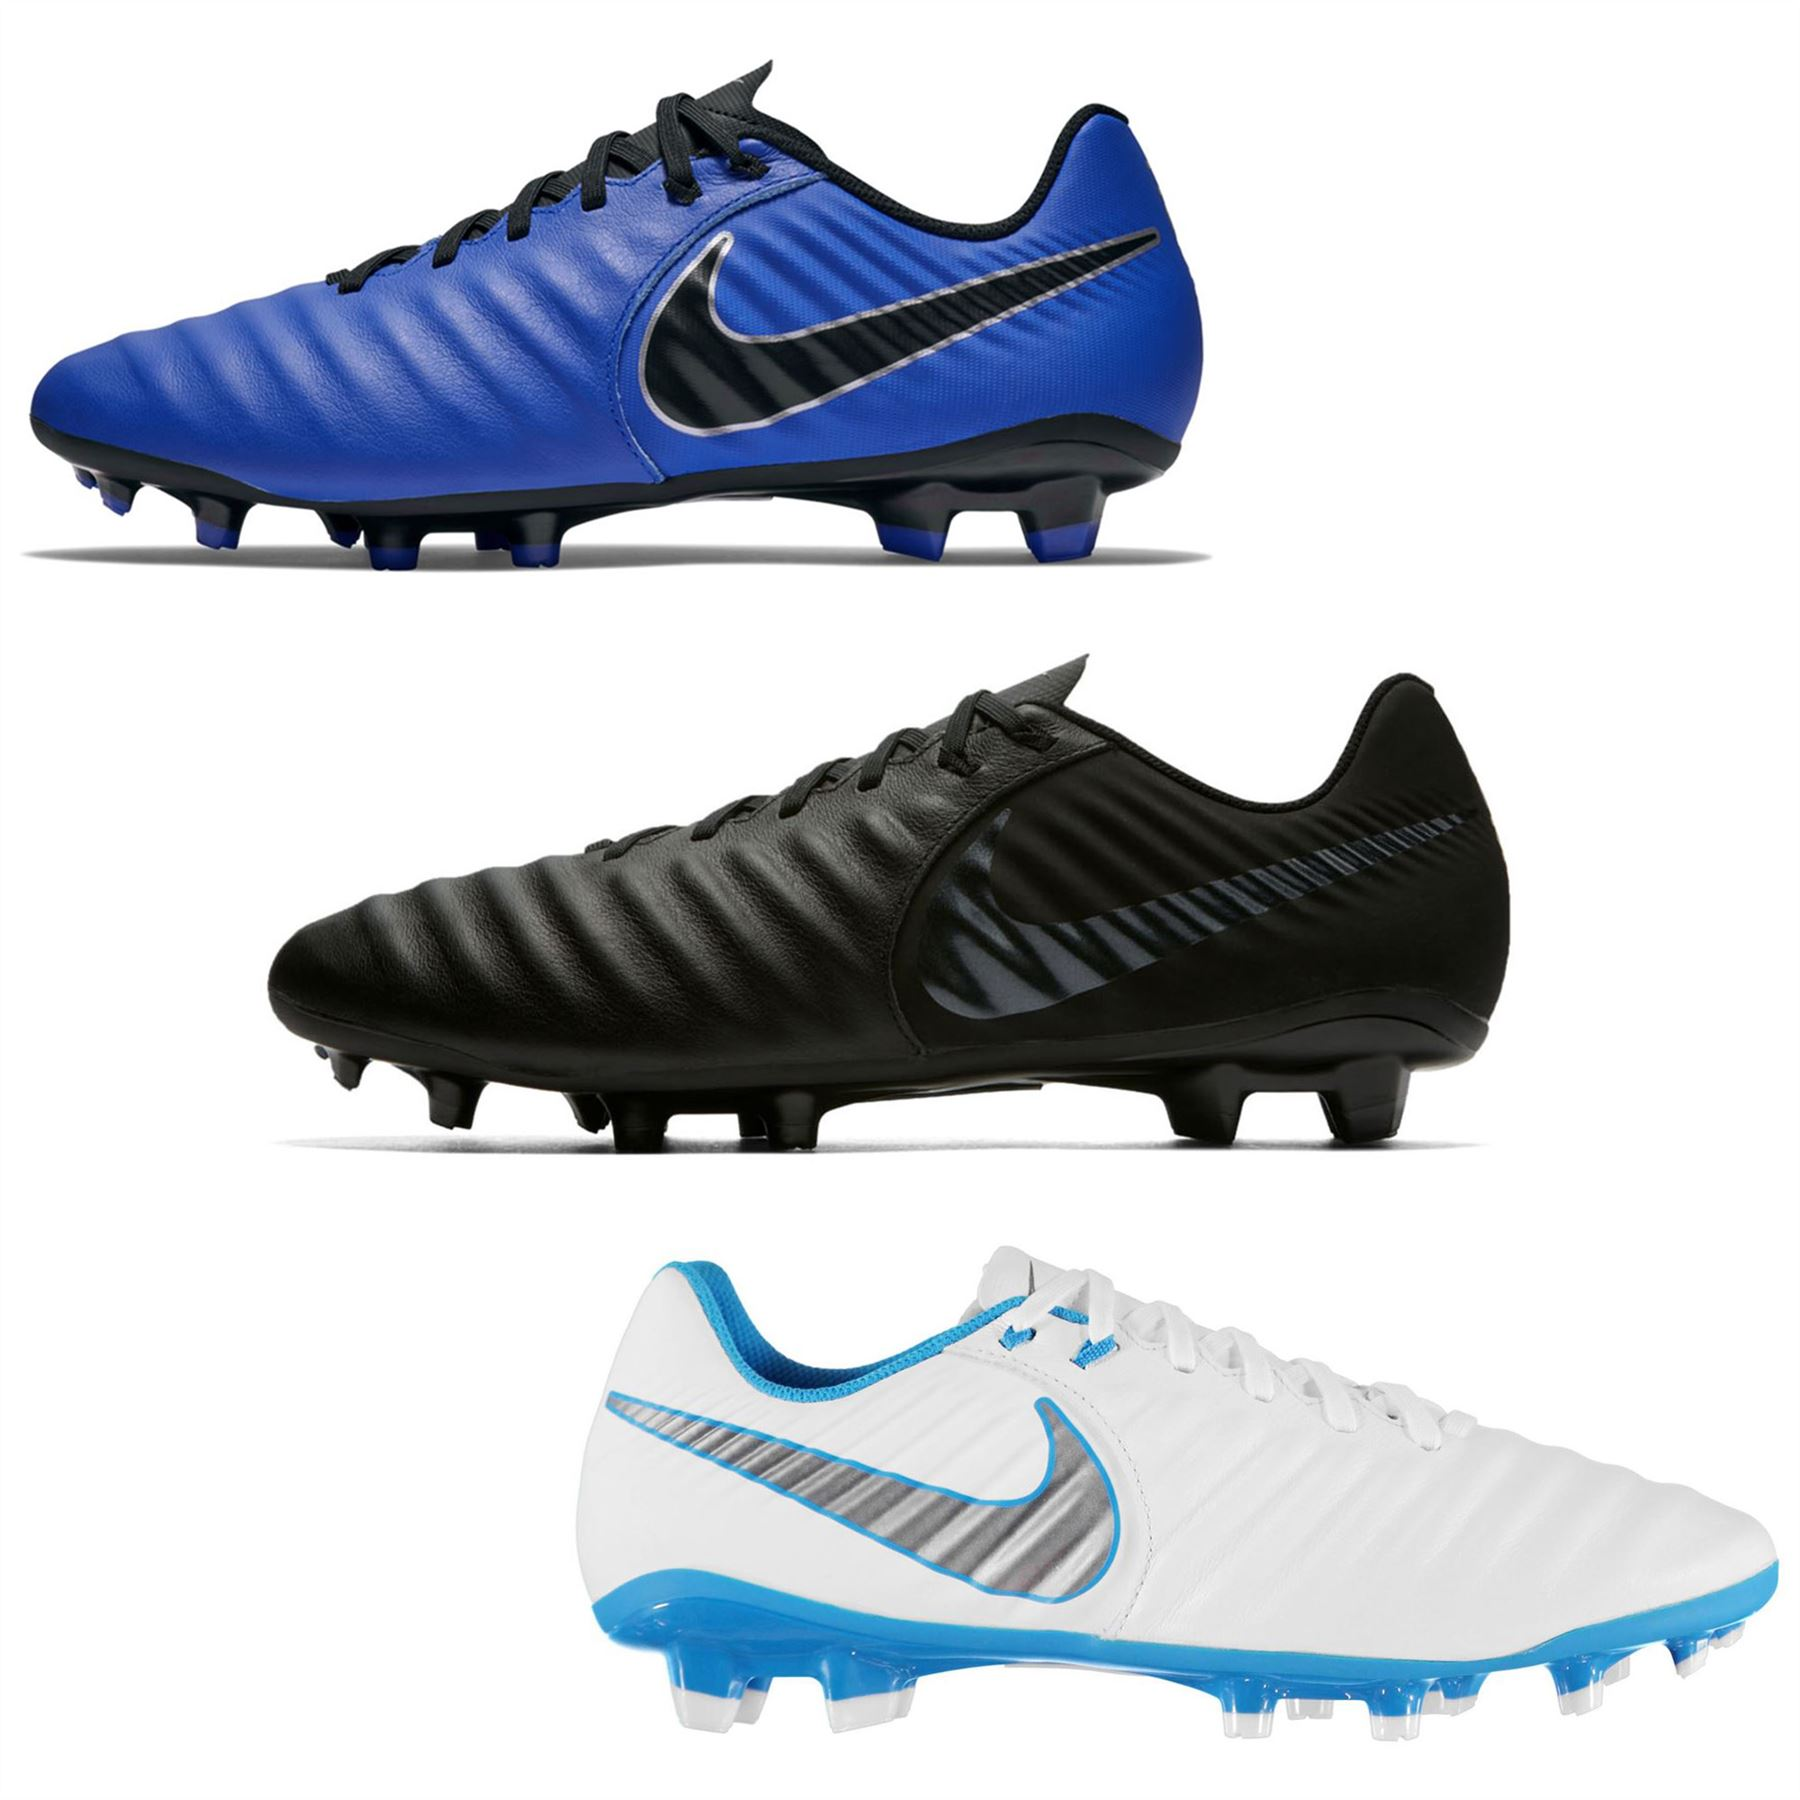 9f2d3596b764 ... Nike Tiempo Legend Academy FG Firm Ground Football Boots Mens Soccer  Shoe Cleats ...